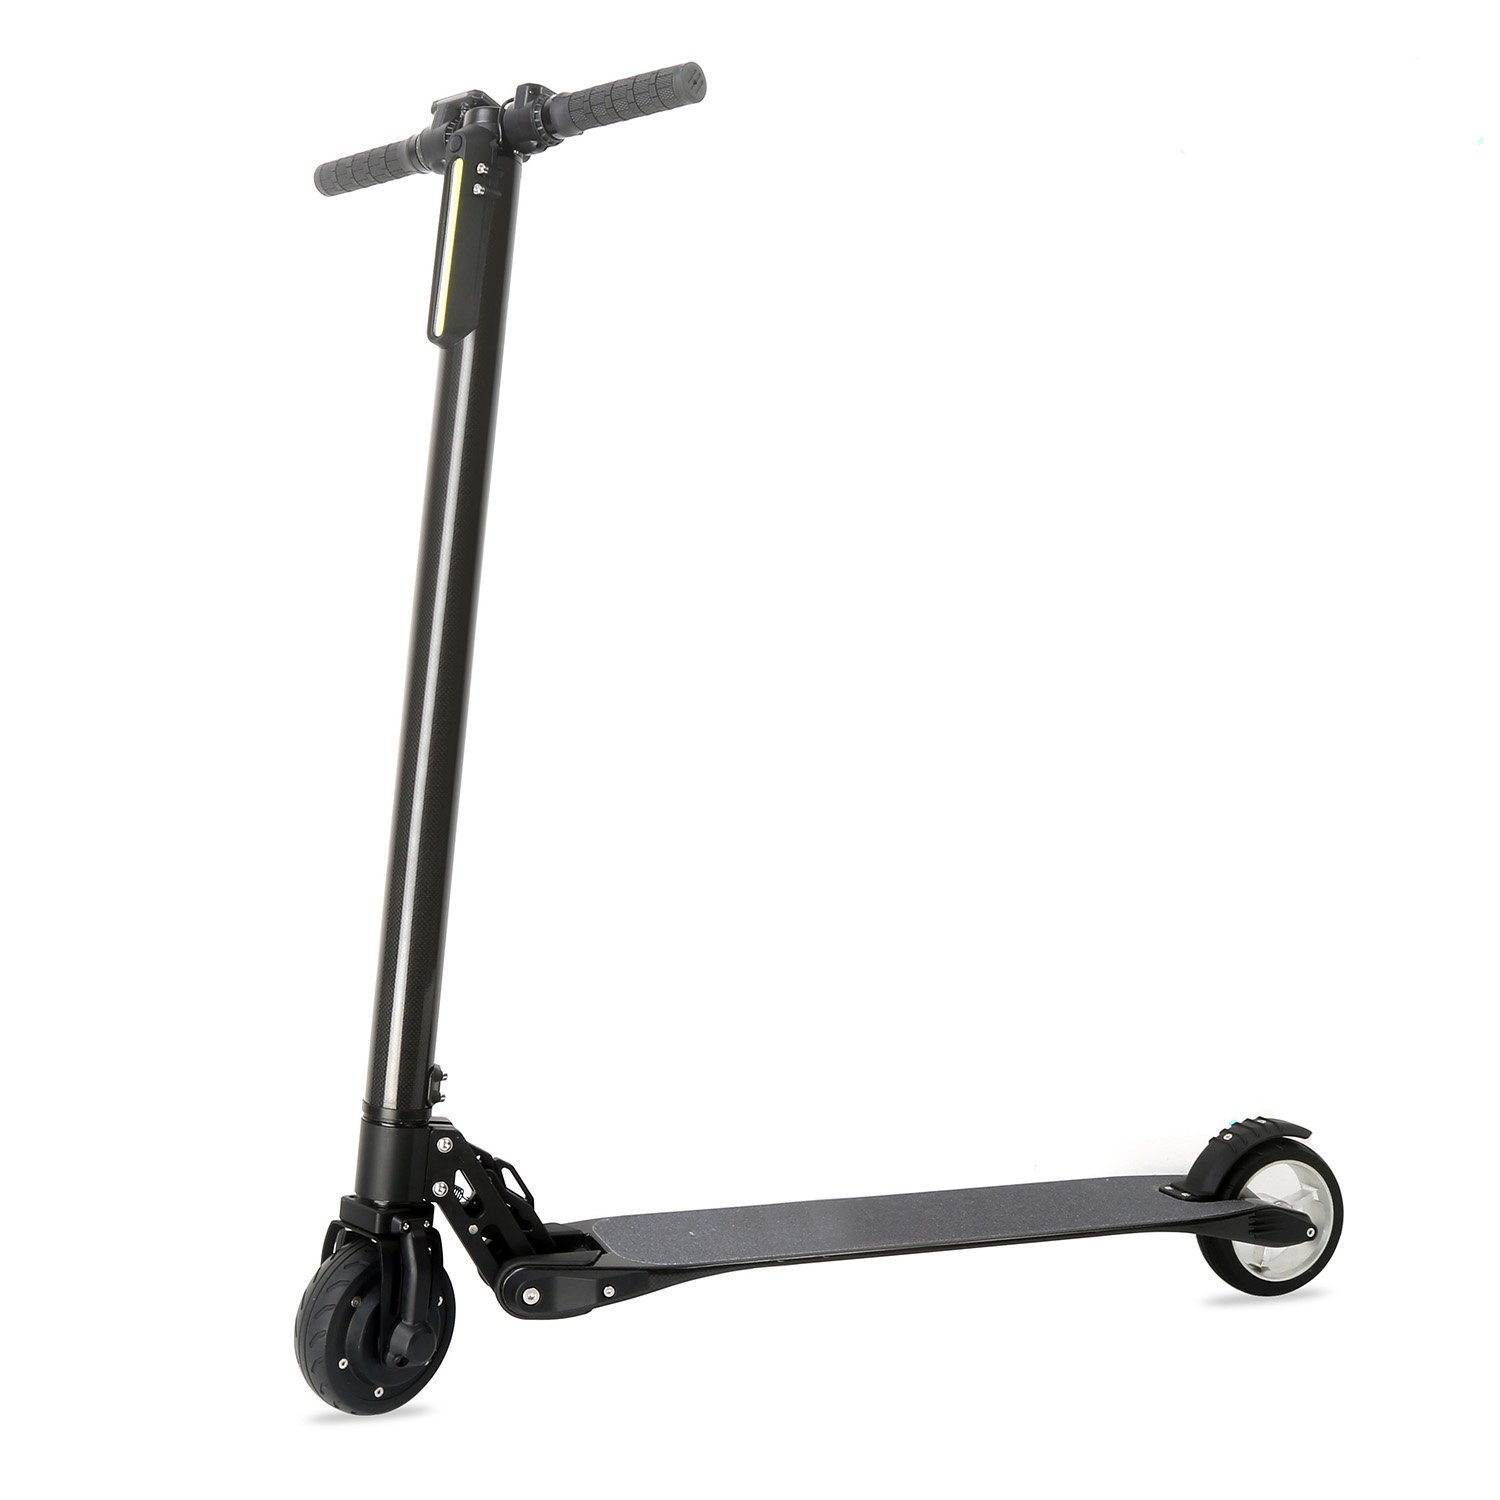 Flying Bird On Wind Carbon Fiber Folding Adult Kick Scooter Electric Scooter Foldable Kick Scooter, World's Lightest Electric Scooter (Black)